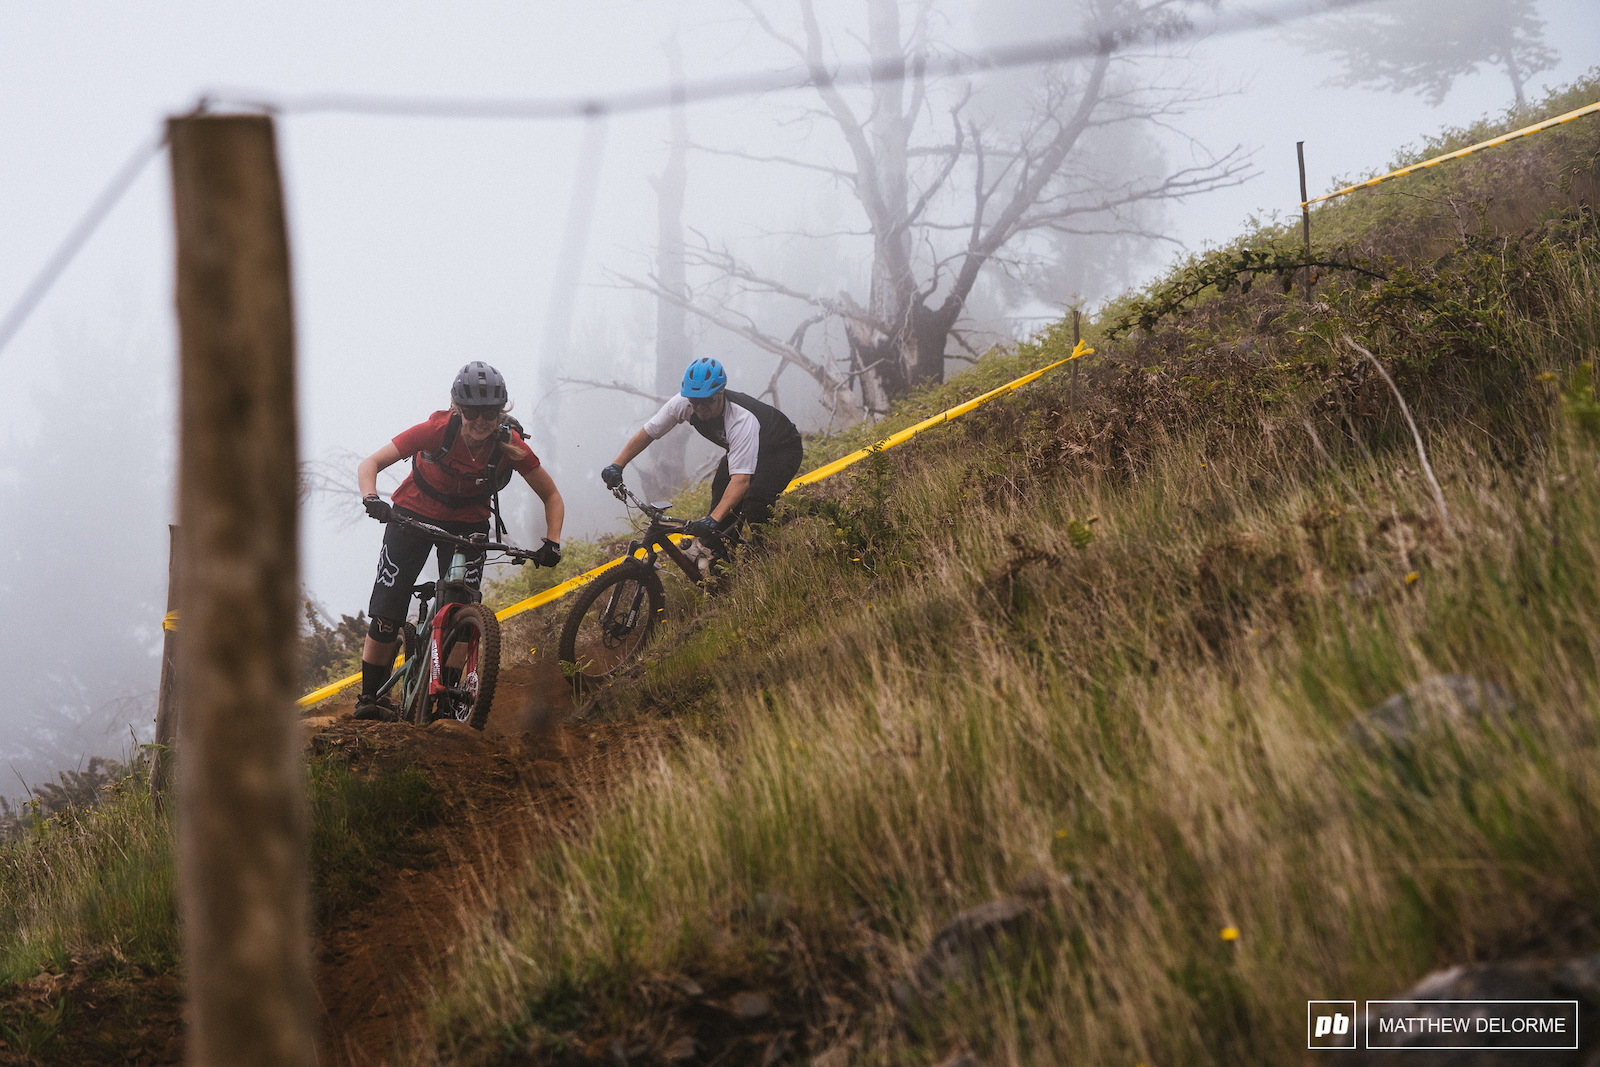 Bebe and James Parkin descend a foggy Gamble trail.